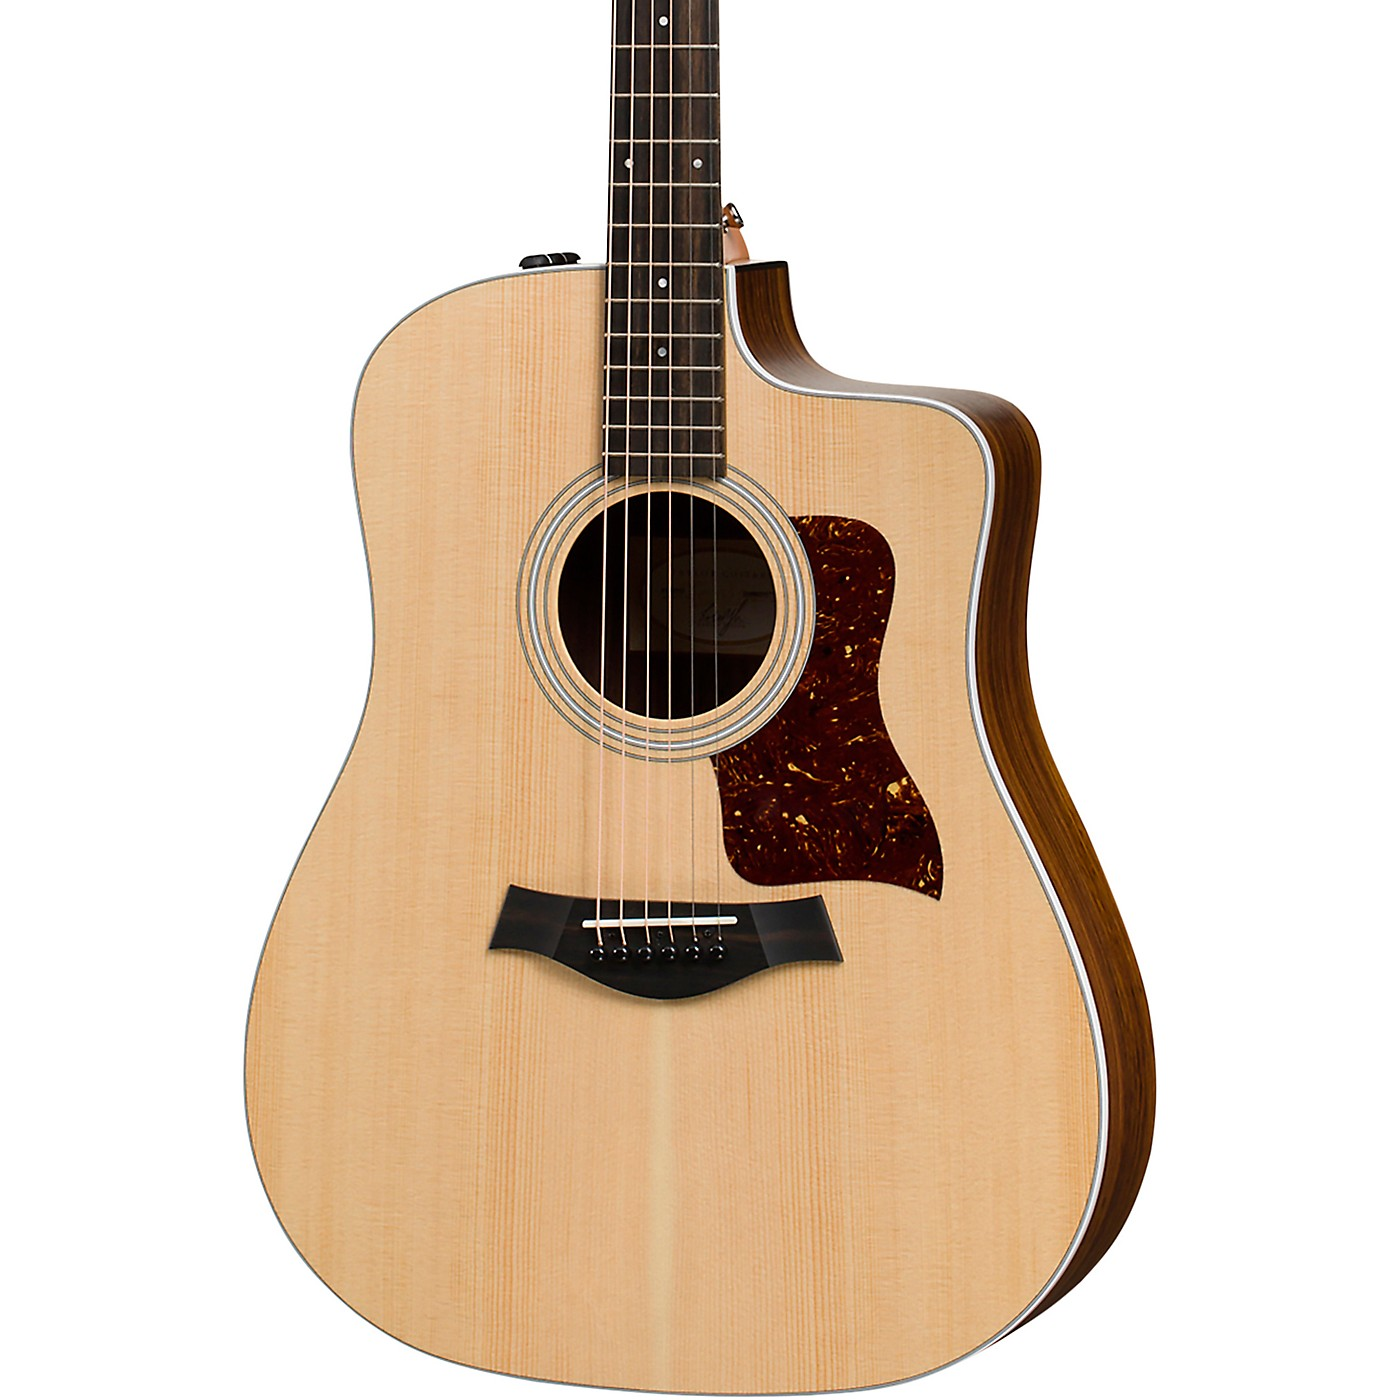 Taylor 210ce Rosewood Dreadnought Acoustic-Electric Guitar thumbnail